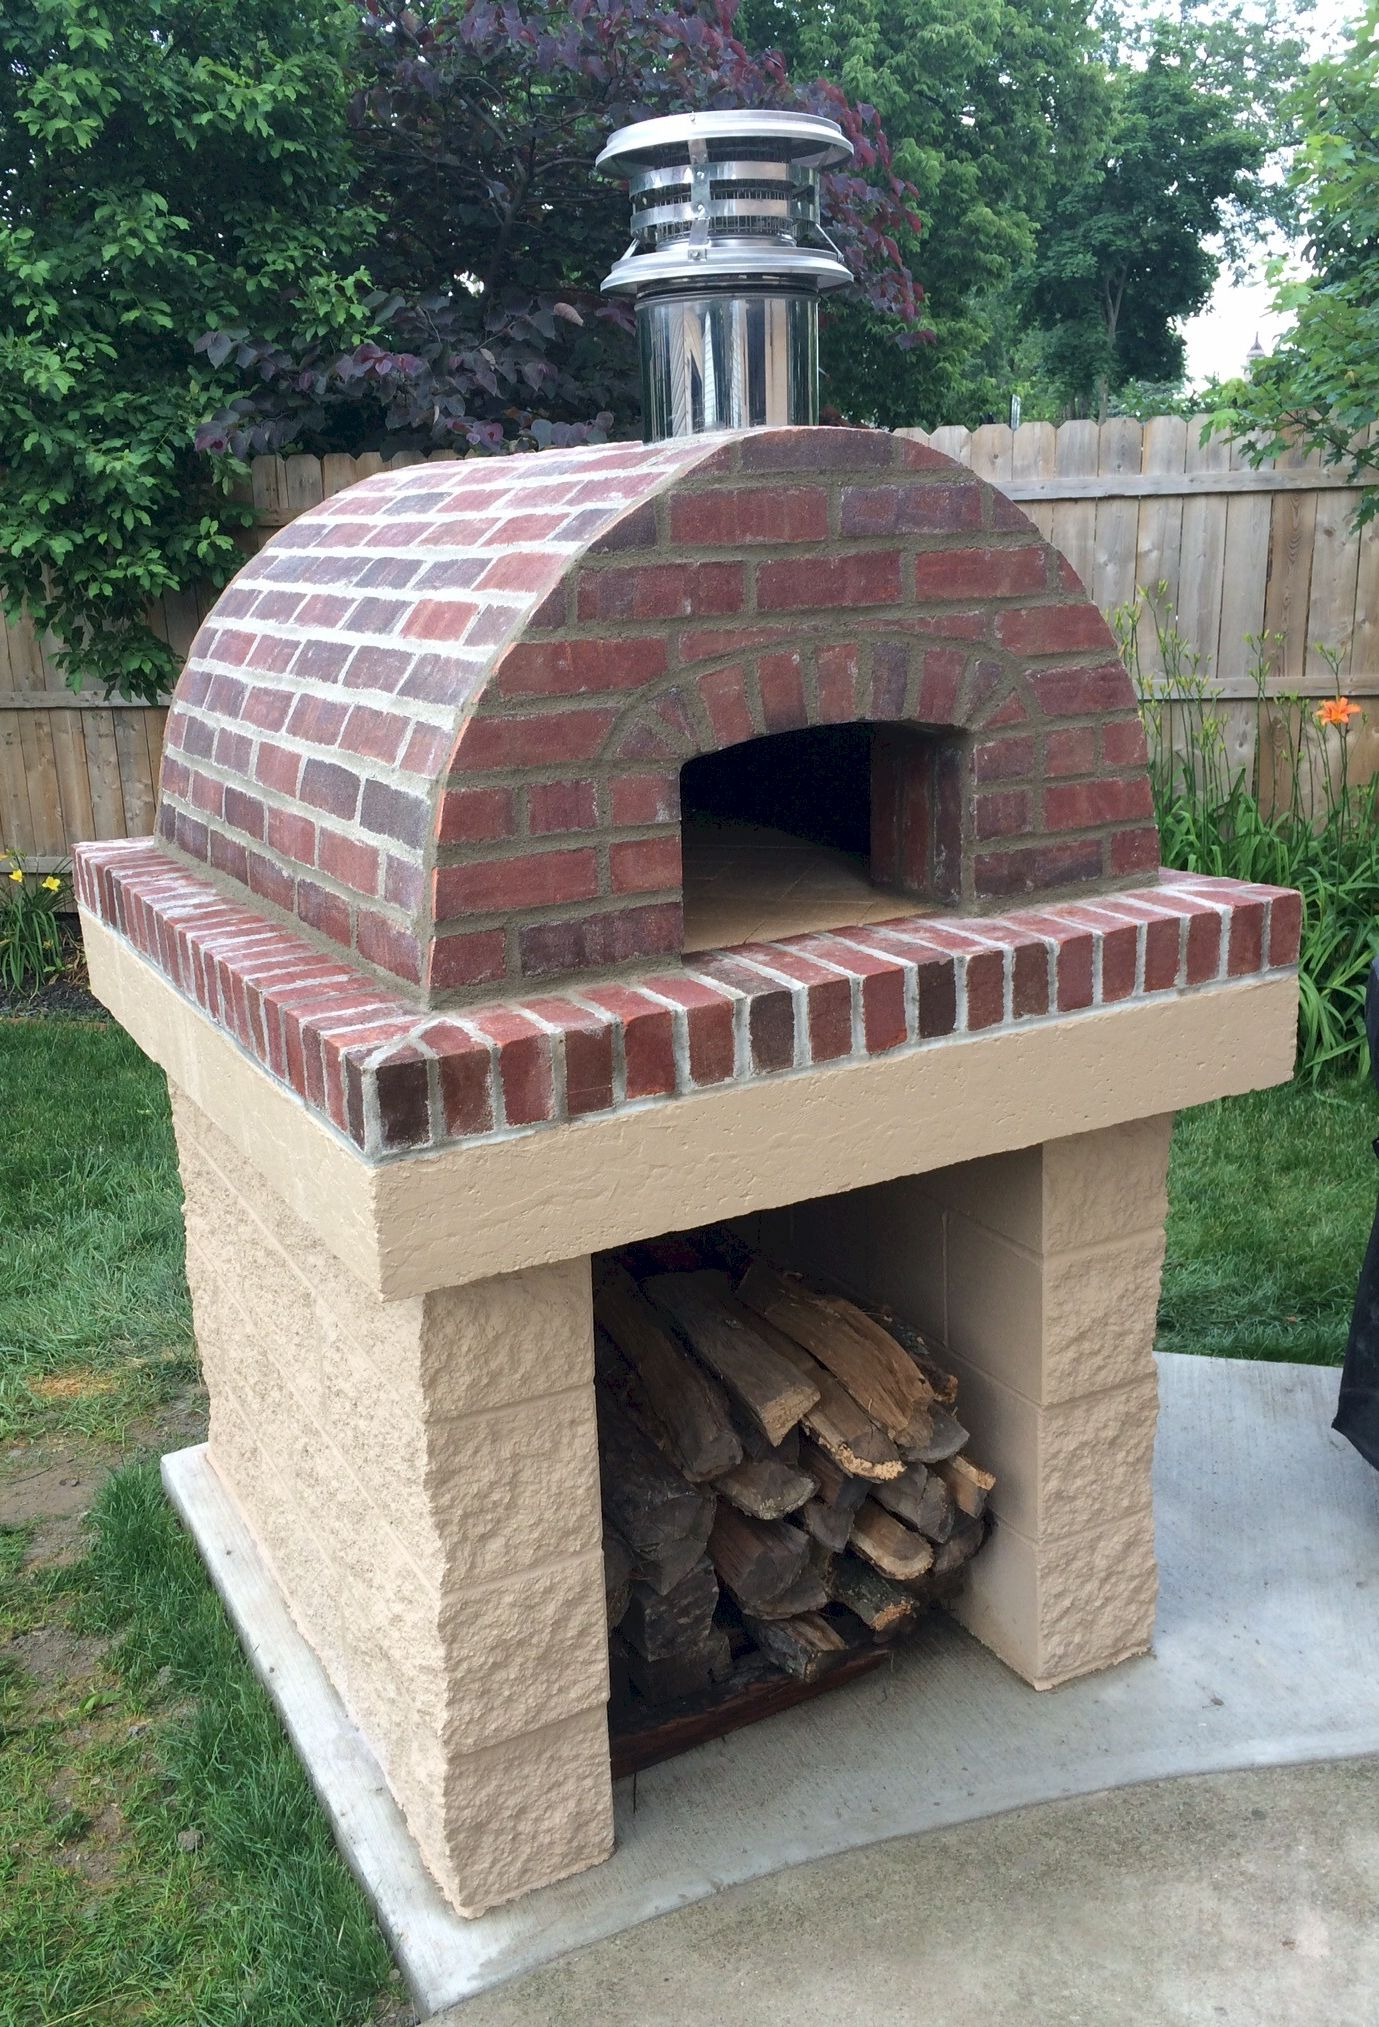 One of the most beautiful cortile barile ovens weve seen